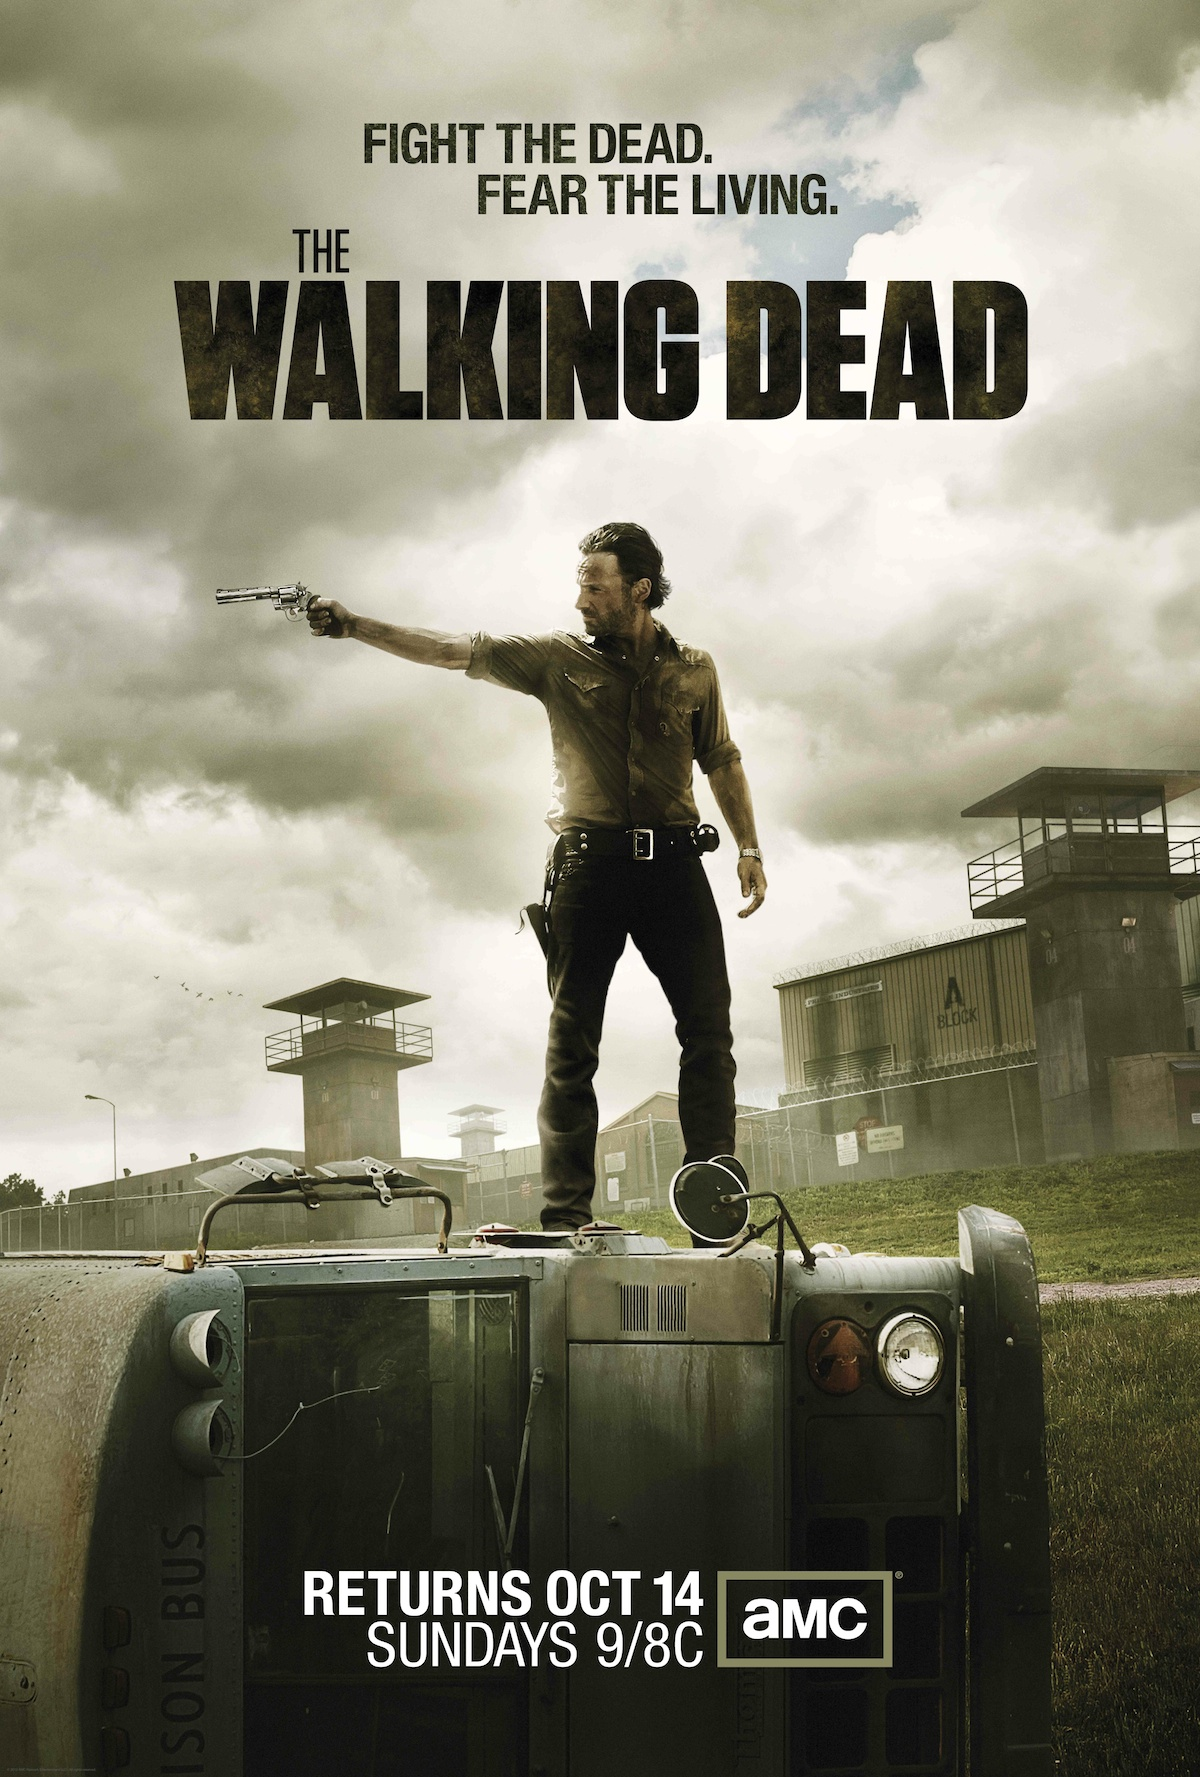 Walking_Dead_Season_3_Poster_9_5_12.jpg